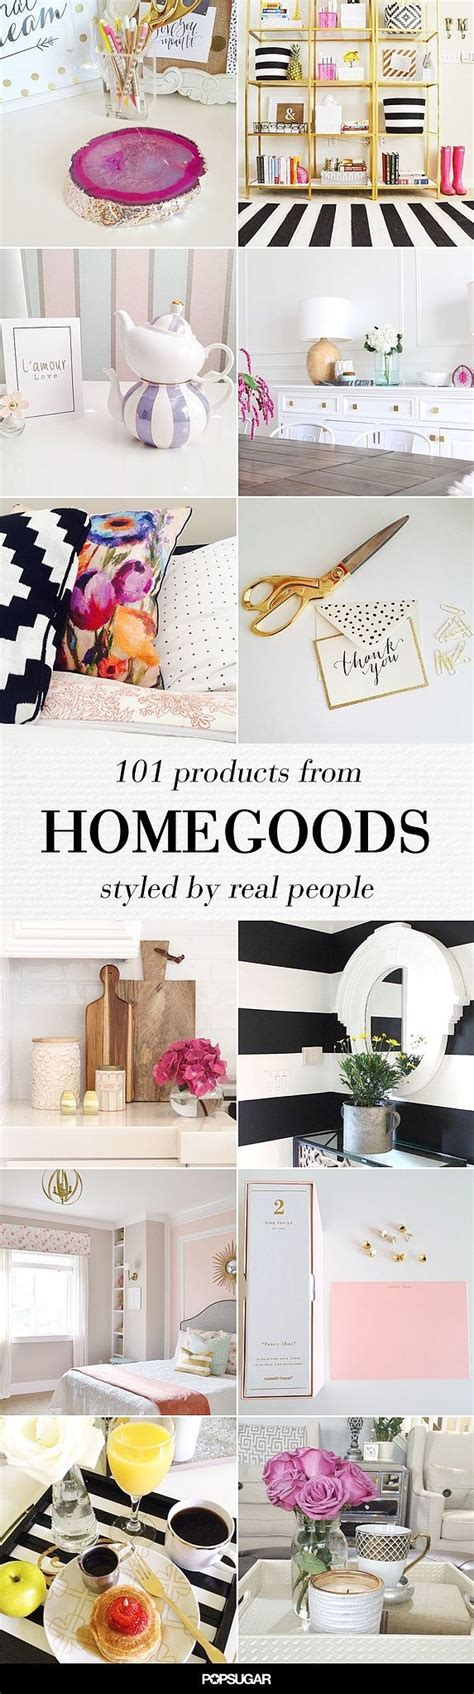 Amazing Homegoods Pieces  10 Home Decor Ideas You'll Want